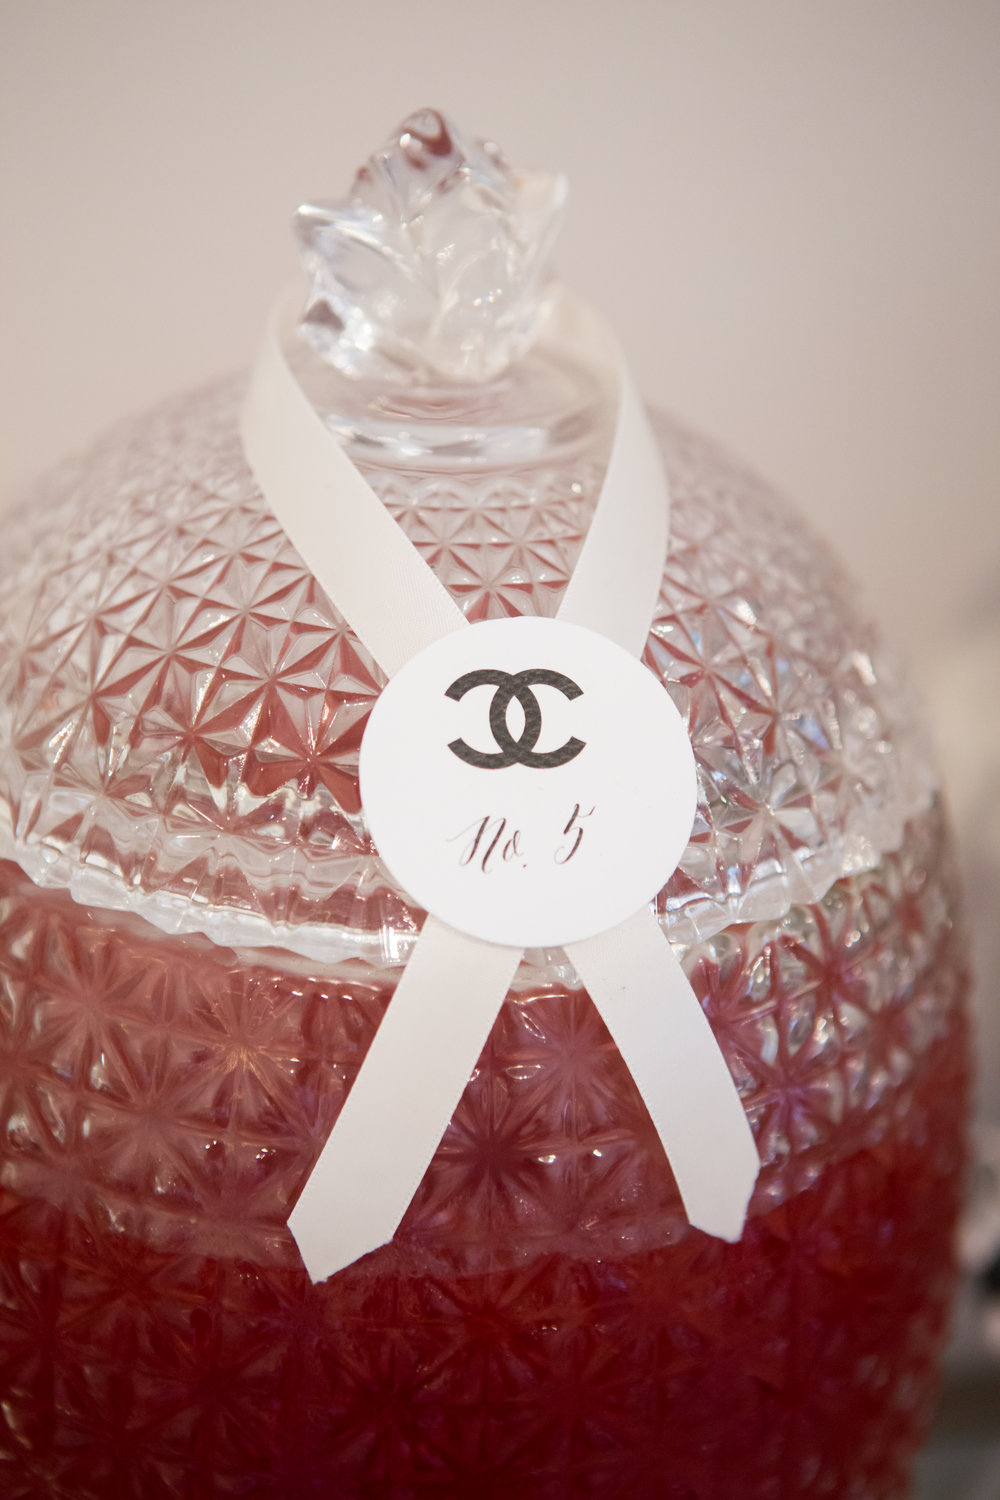 Coco Chanel Punch2.jpg